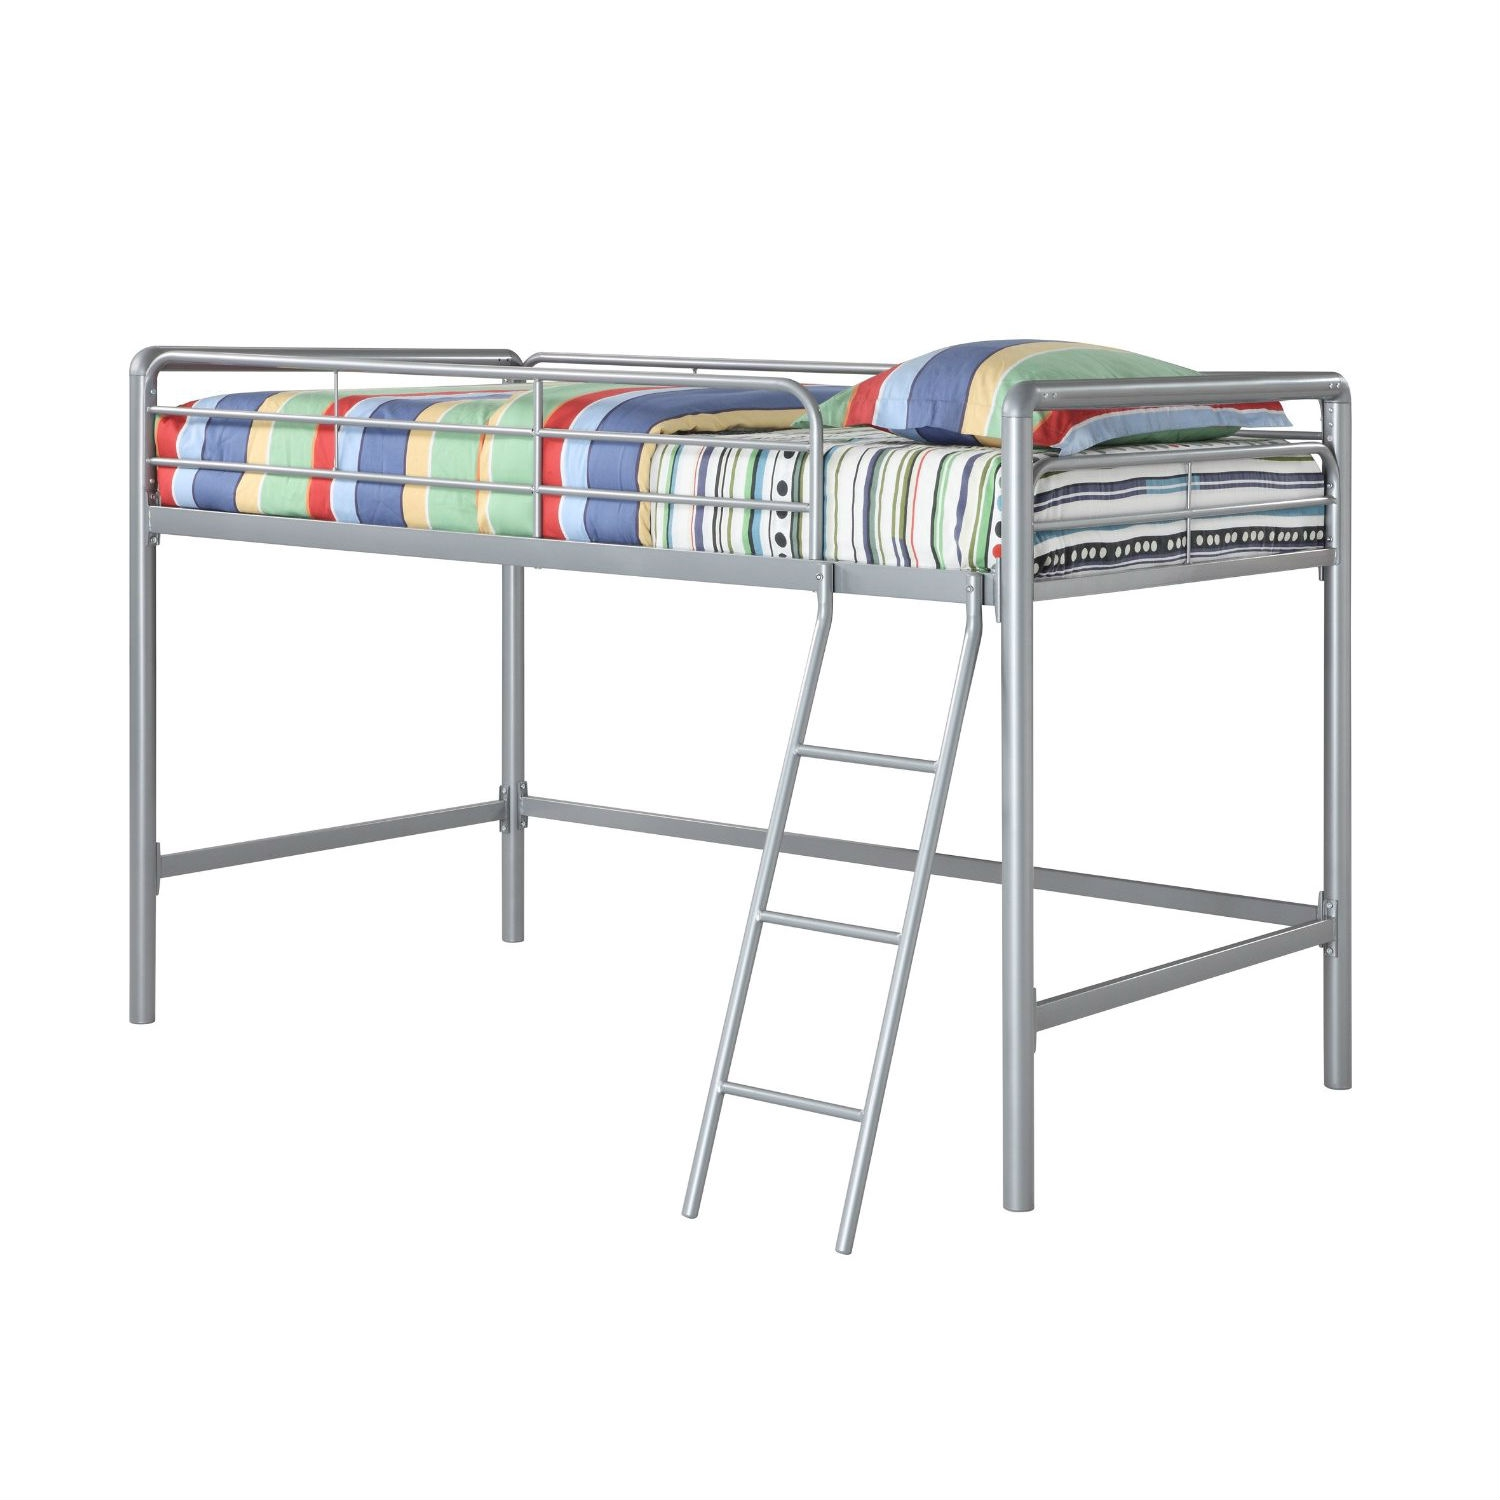 Twin size Bunk Bed Style Metal Loft Bed in Silver, DJLB149 :  This Twin size Bunk Bed Style Metal Loft Bed in Silver is perfect for any junior in your house. Not too high that the bed is unsafe if a child falls and not too low that they can't play underneath it, the Junior Metal Loft Bed is the ideal height. Fitting for smaller rooms, the space-saving design of this loft bed is durable and solid through years of use. The Junior Metal Loft Bed in silver is junior in size but not in efficiency.